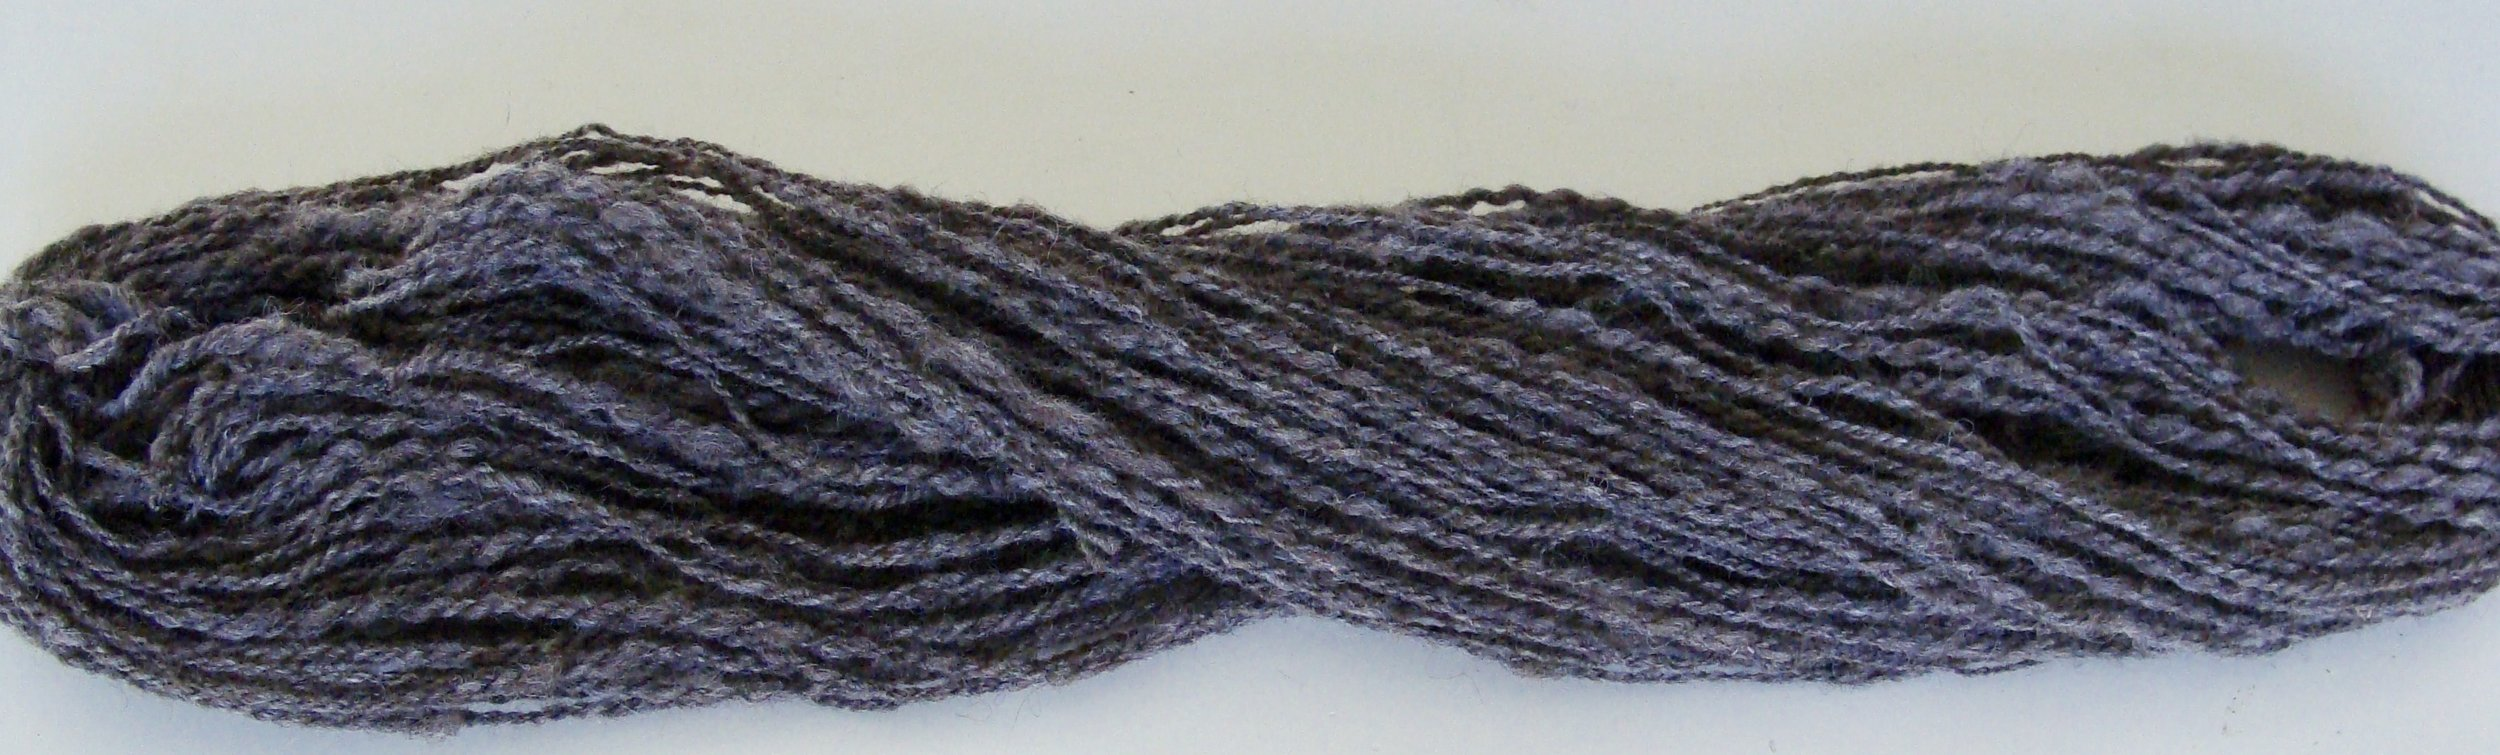 Coopworth wool handspun 2-ply unfinished